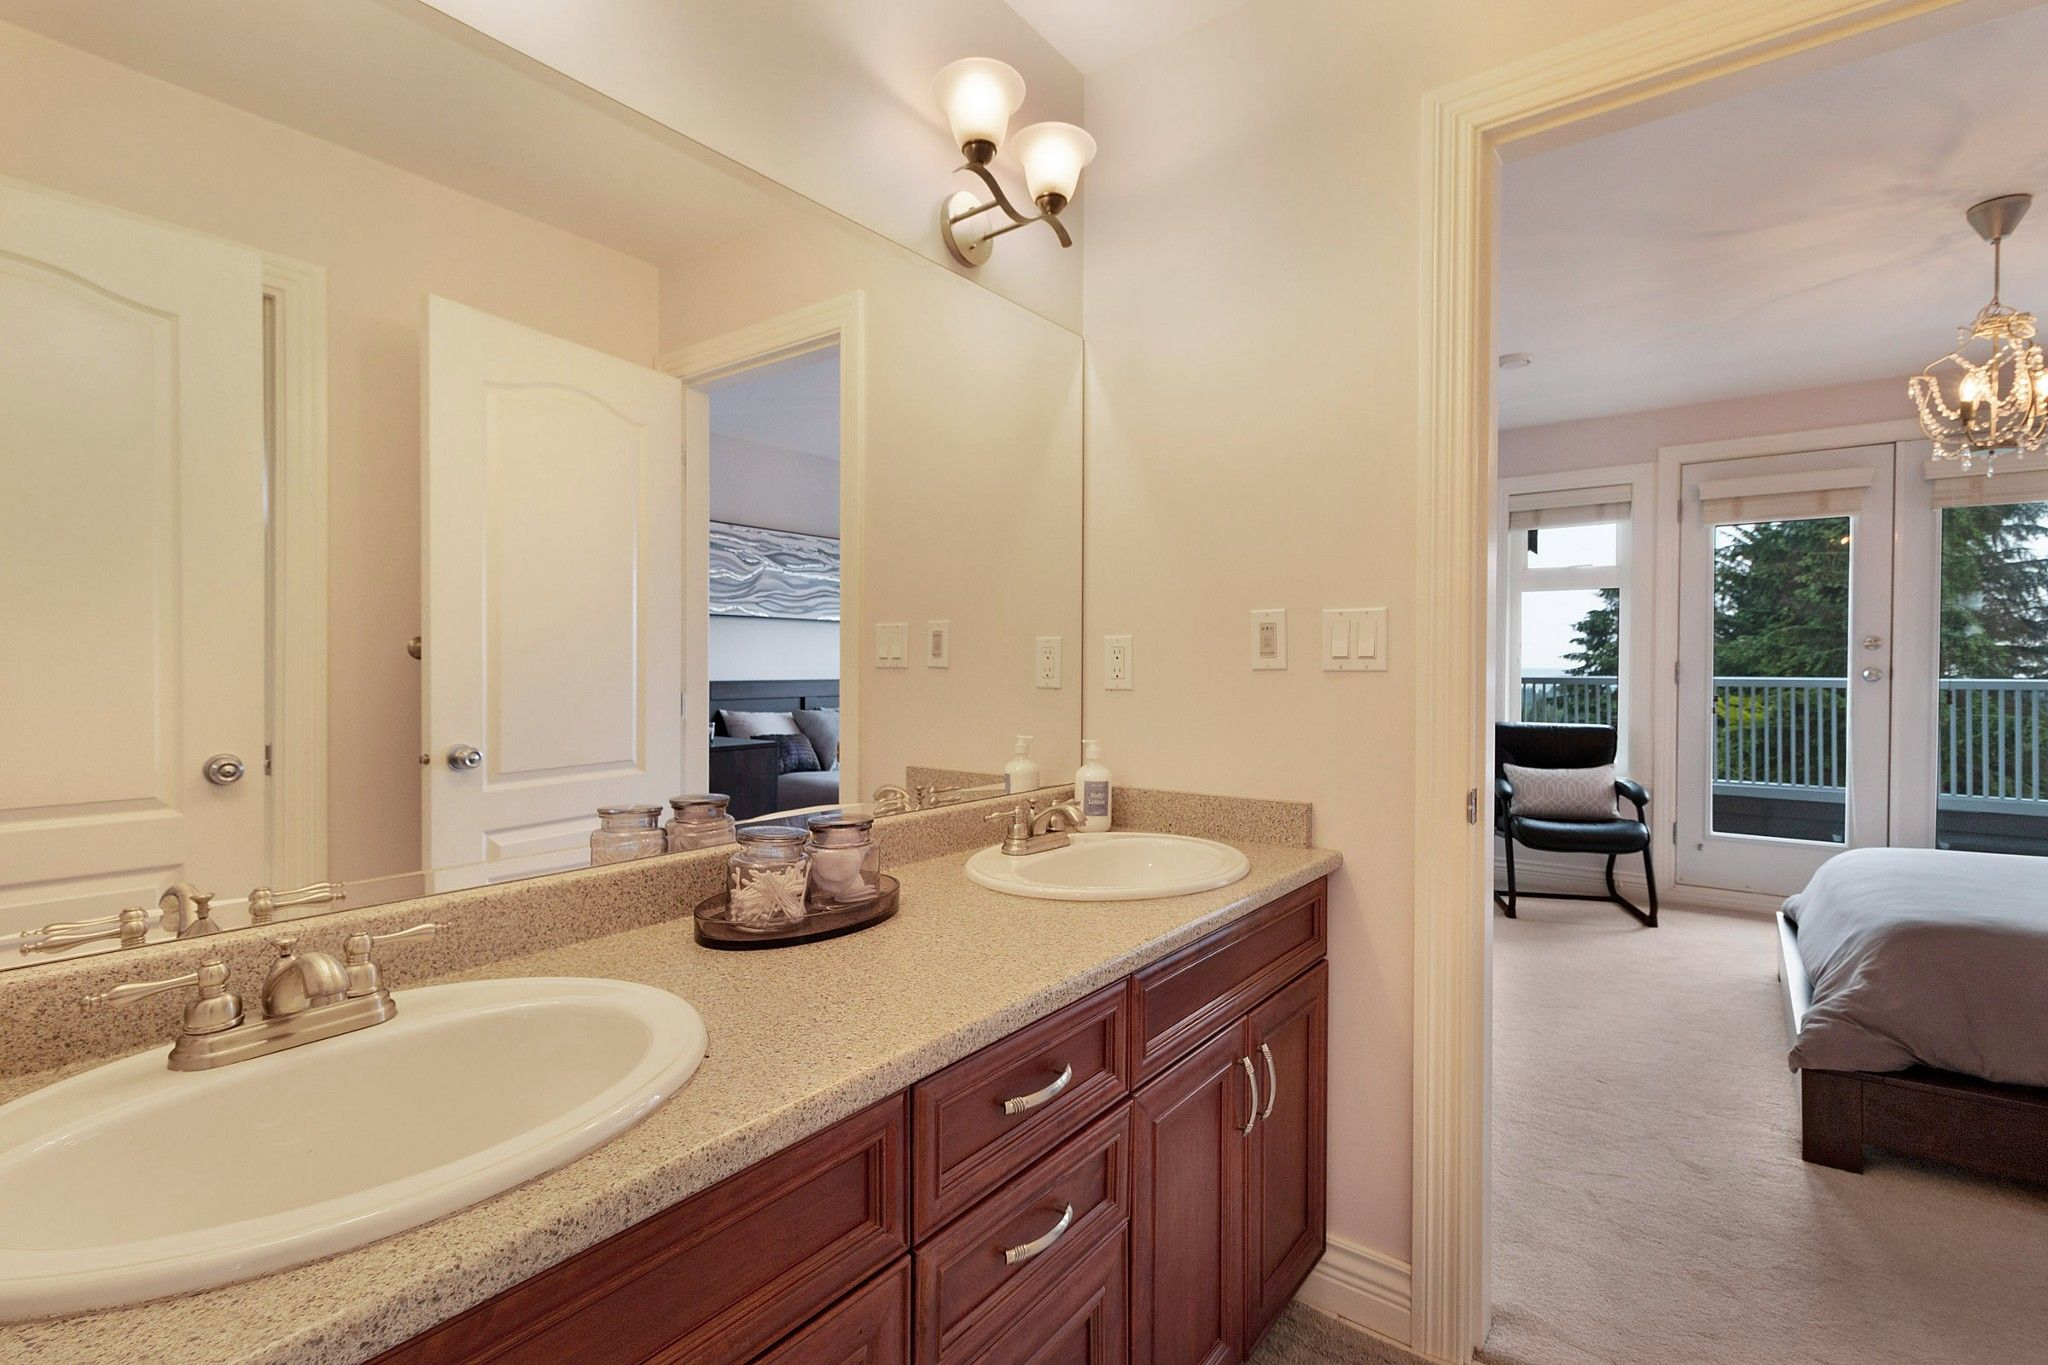 Photo 26: Photos: 1237 DYCK Road in North Vancouver: Lynn Valley House for sale : MLS®# R2374868